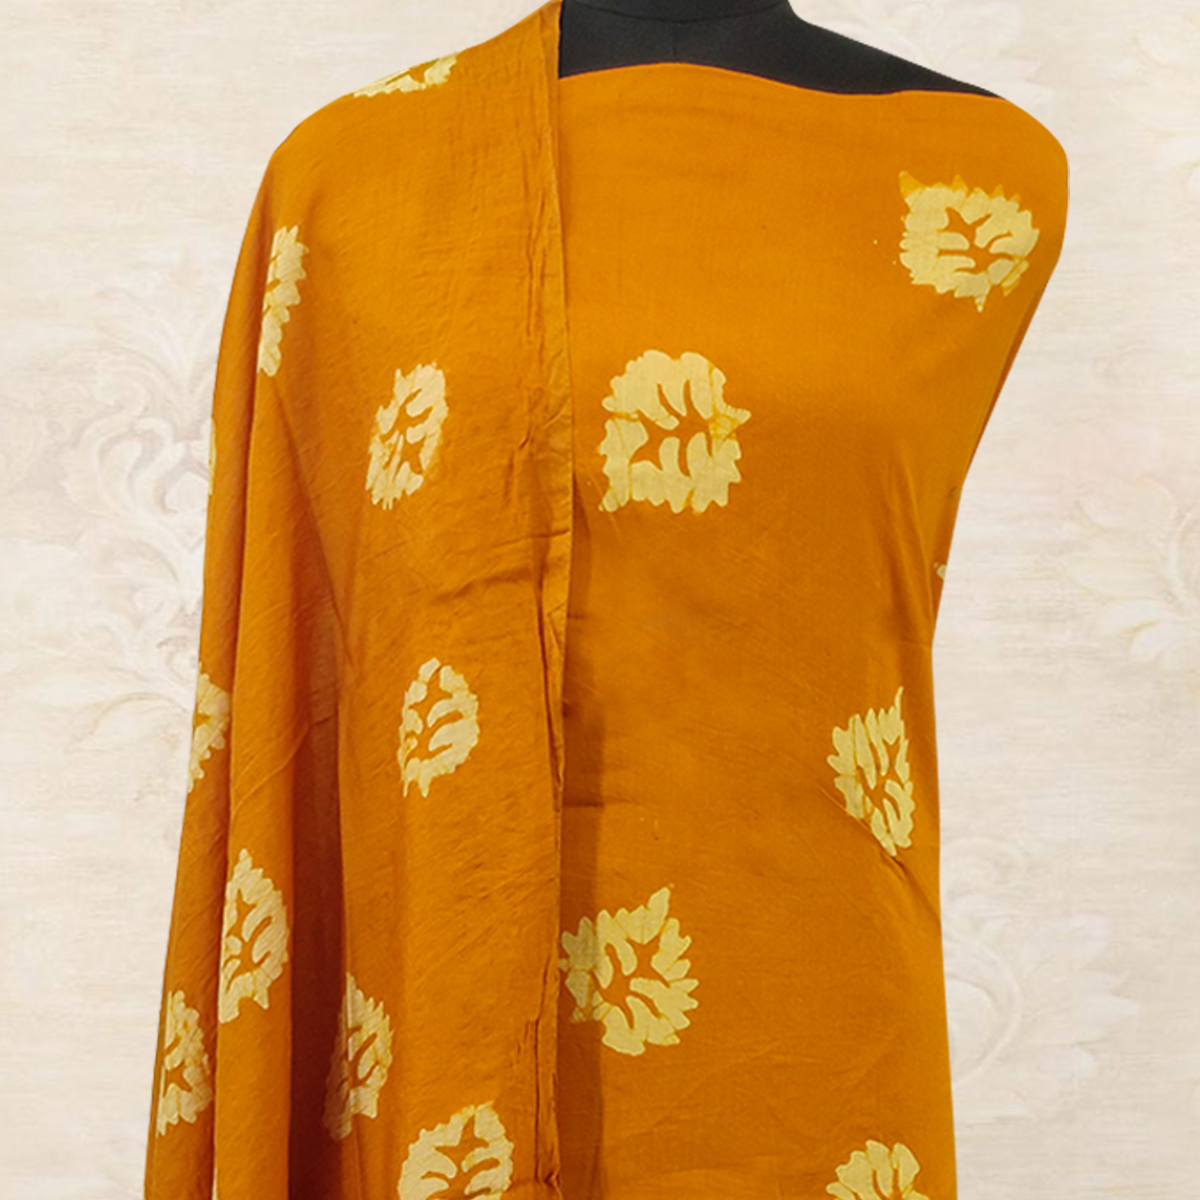 IRIS - Orange Colored Casual Hand Wax Batik Printed Cotton Dress Material